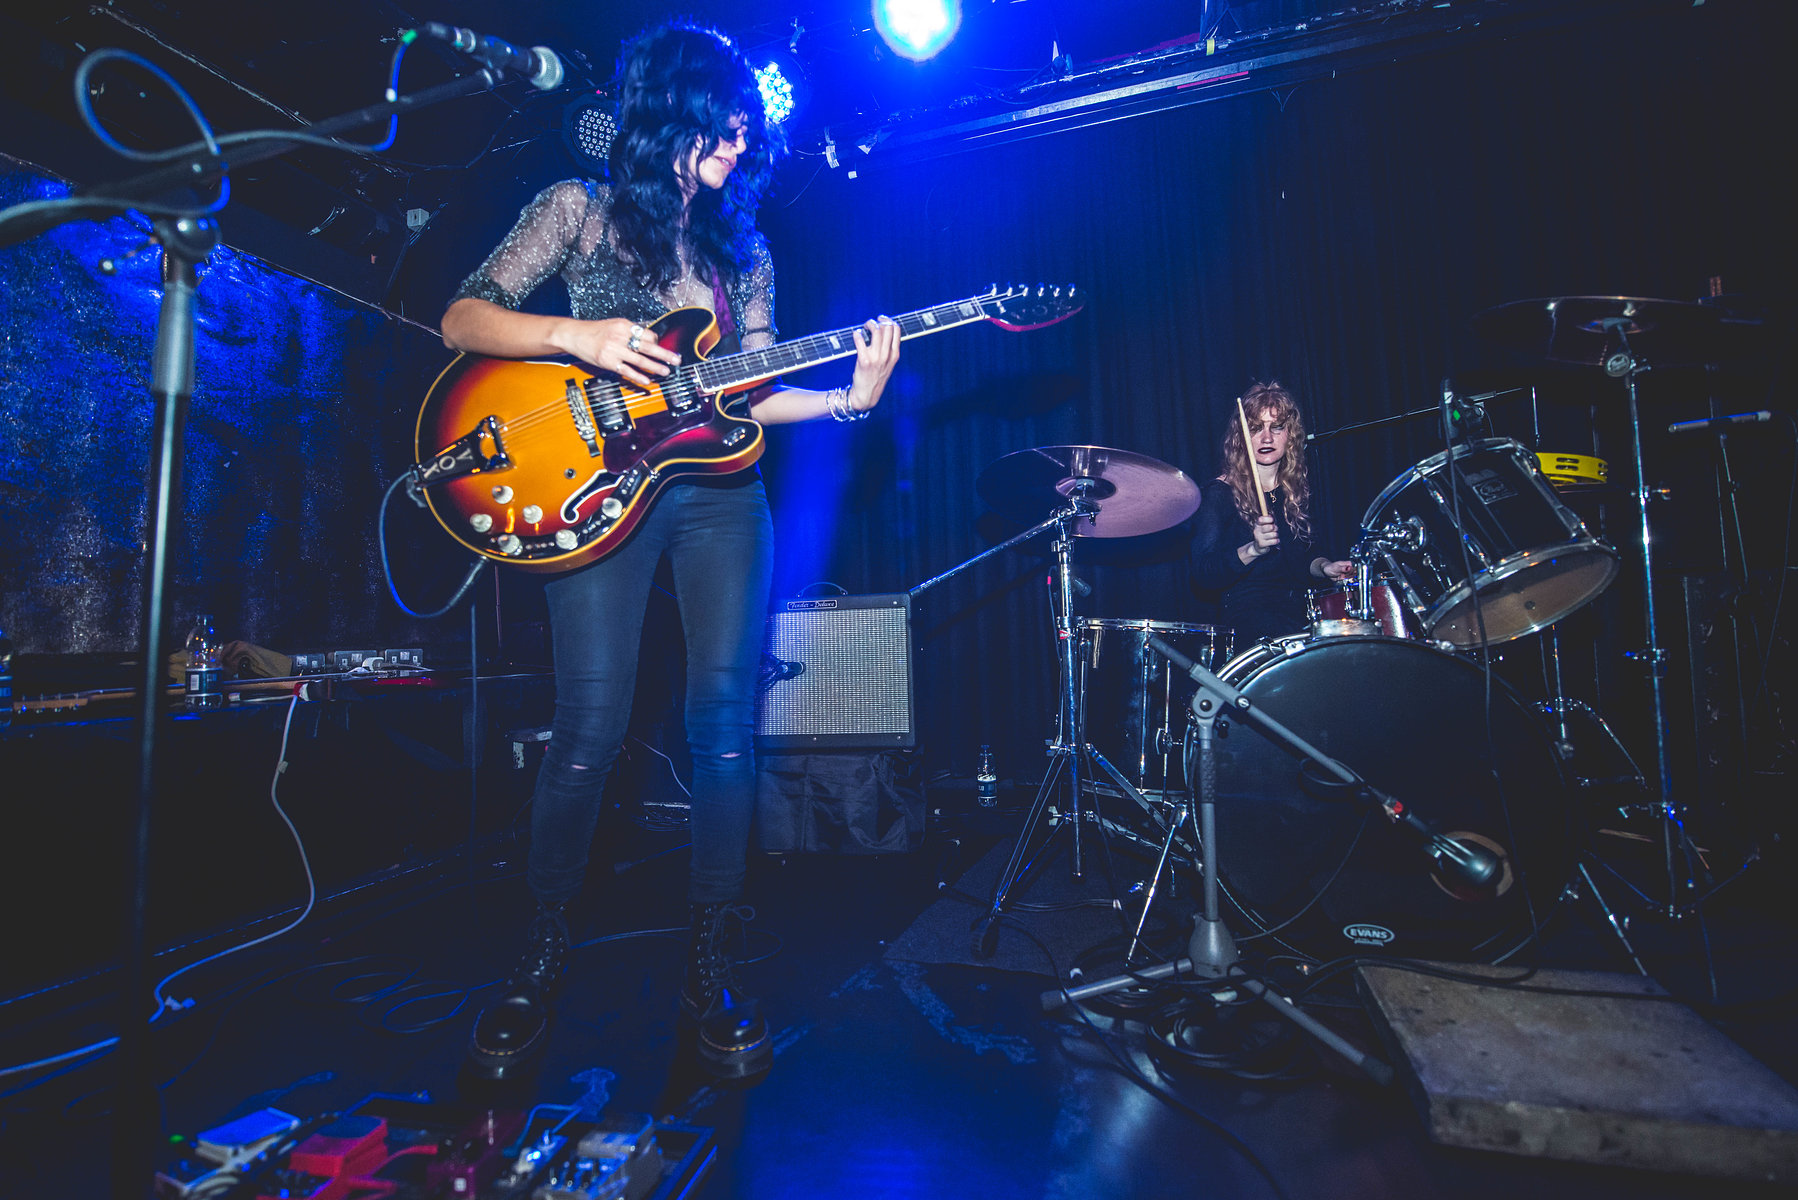 L.A. Witch at the Lexington, February 18th, 2017